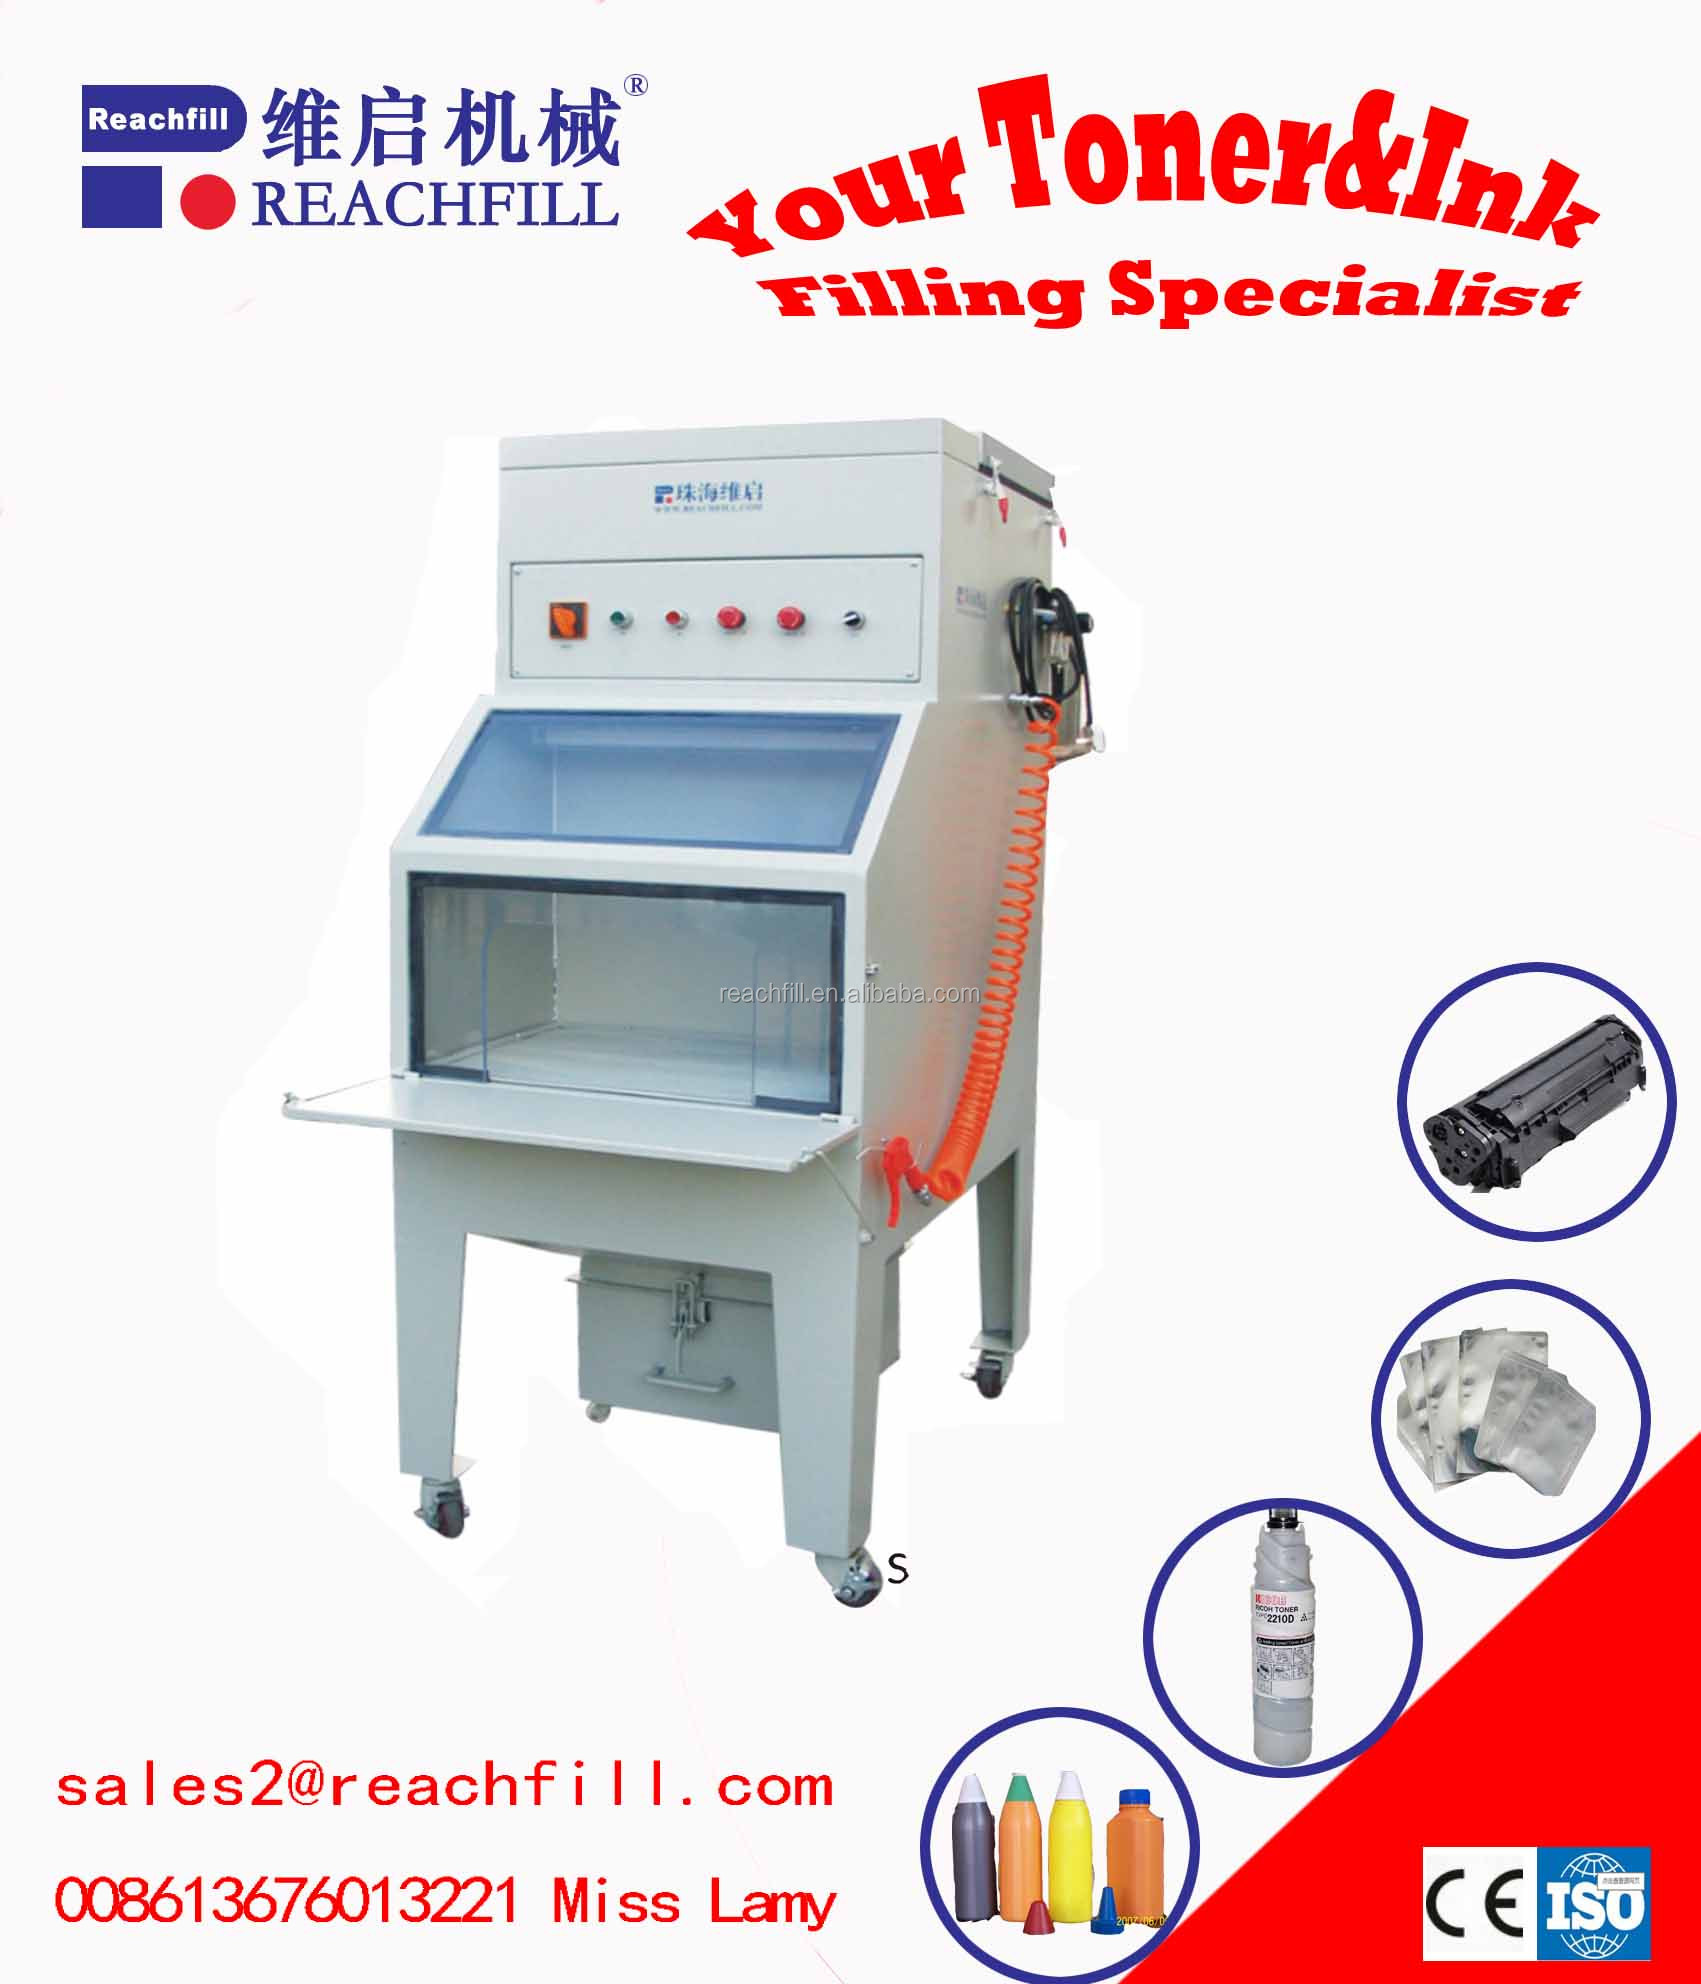 Office Cleaning Equipment, Office Cleaning Equipment Suppliers and ...